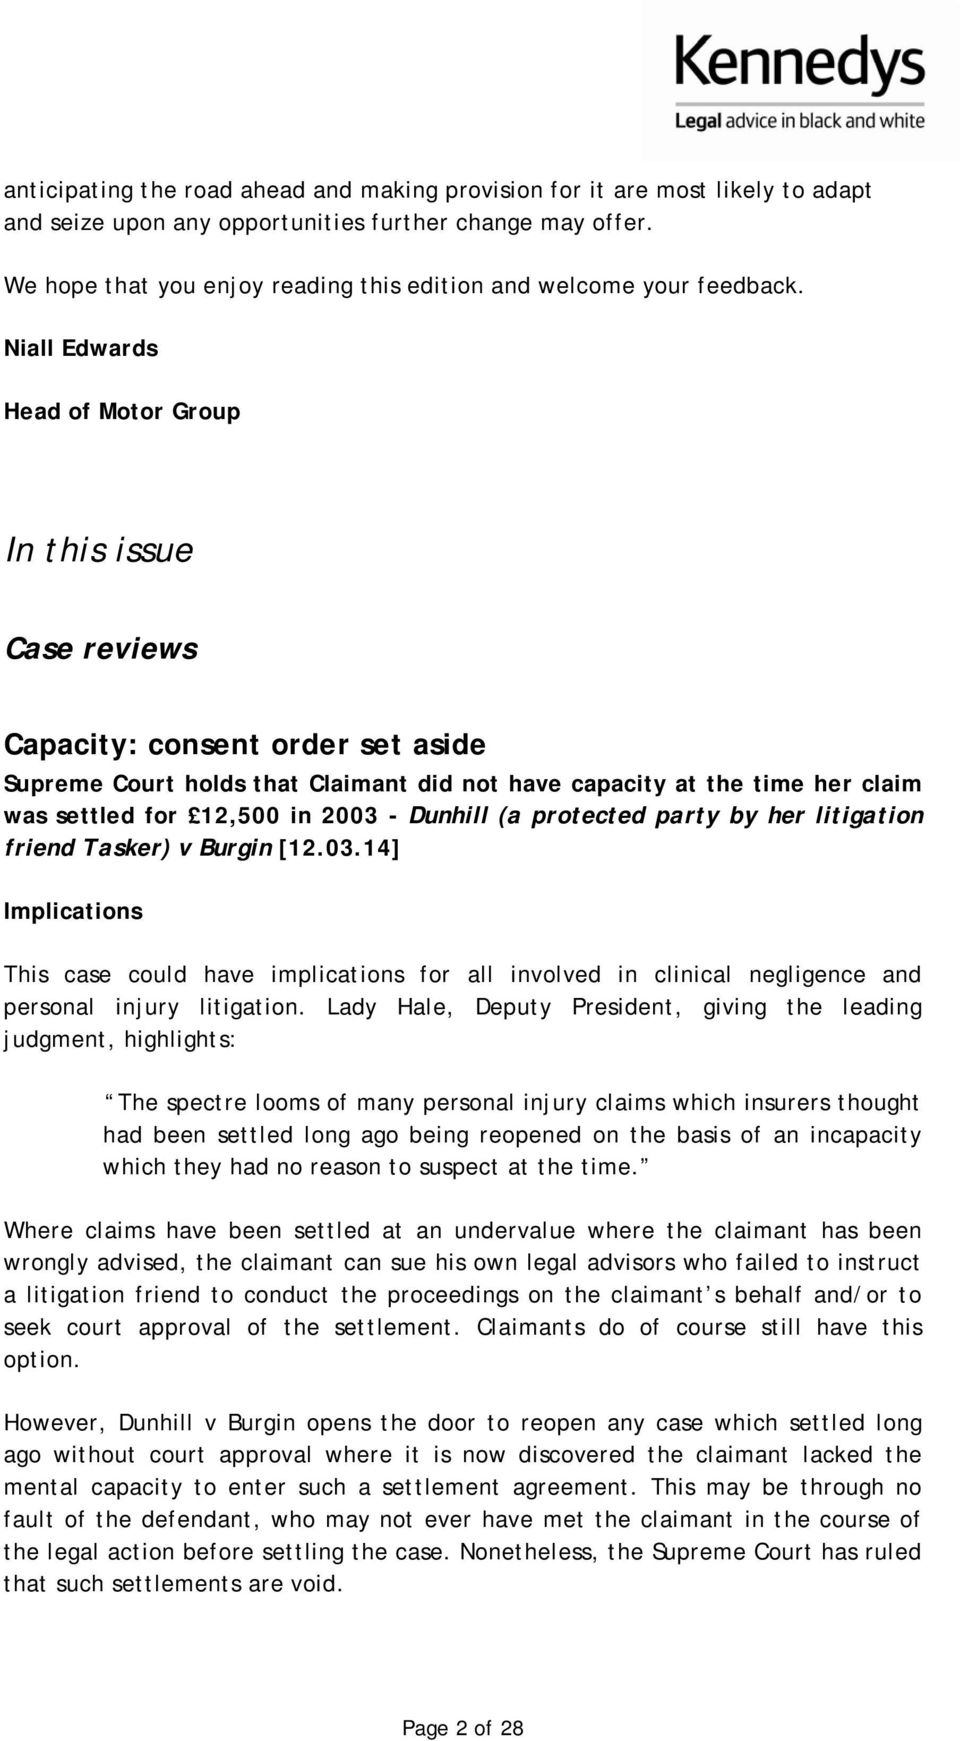 Niall Edwards Head of Motor Group In this issue Case reviews Capacity: consent order set aside Supreme Court holds that Claimant did not have capacity at the time her claim was settled for 12,500 in